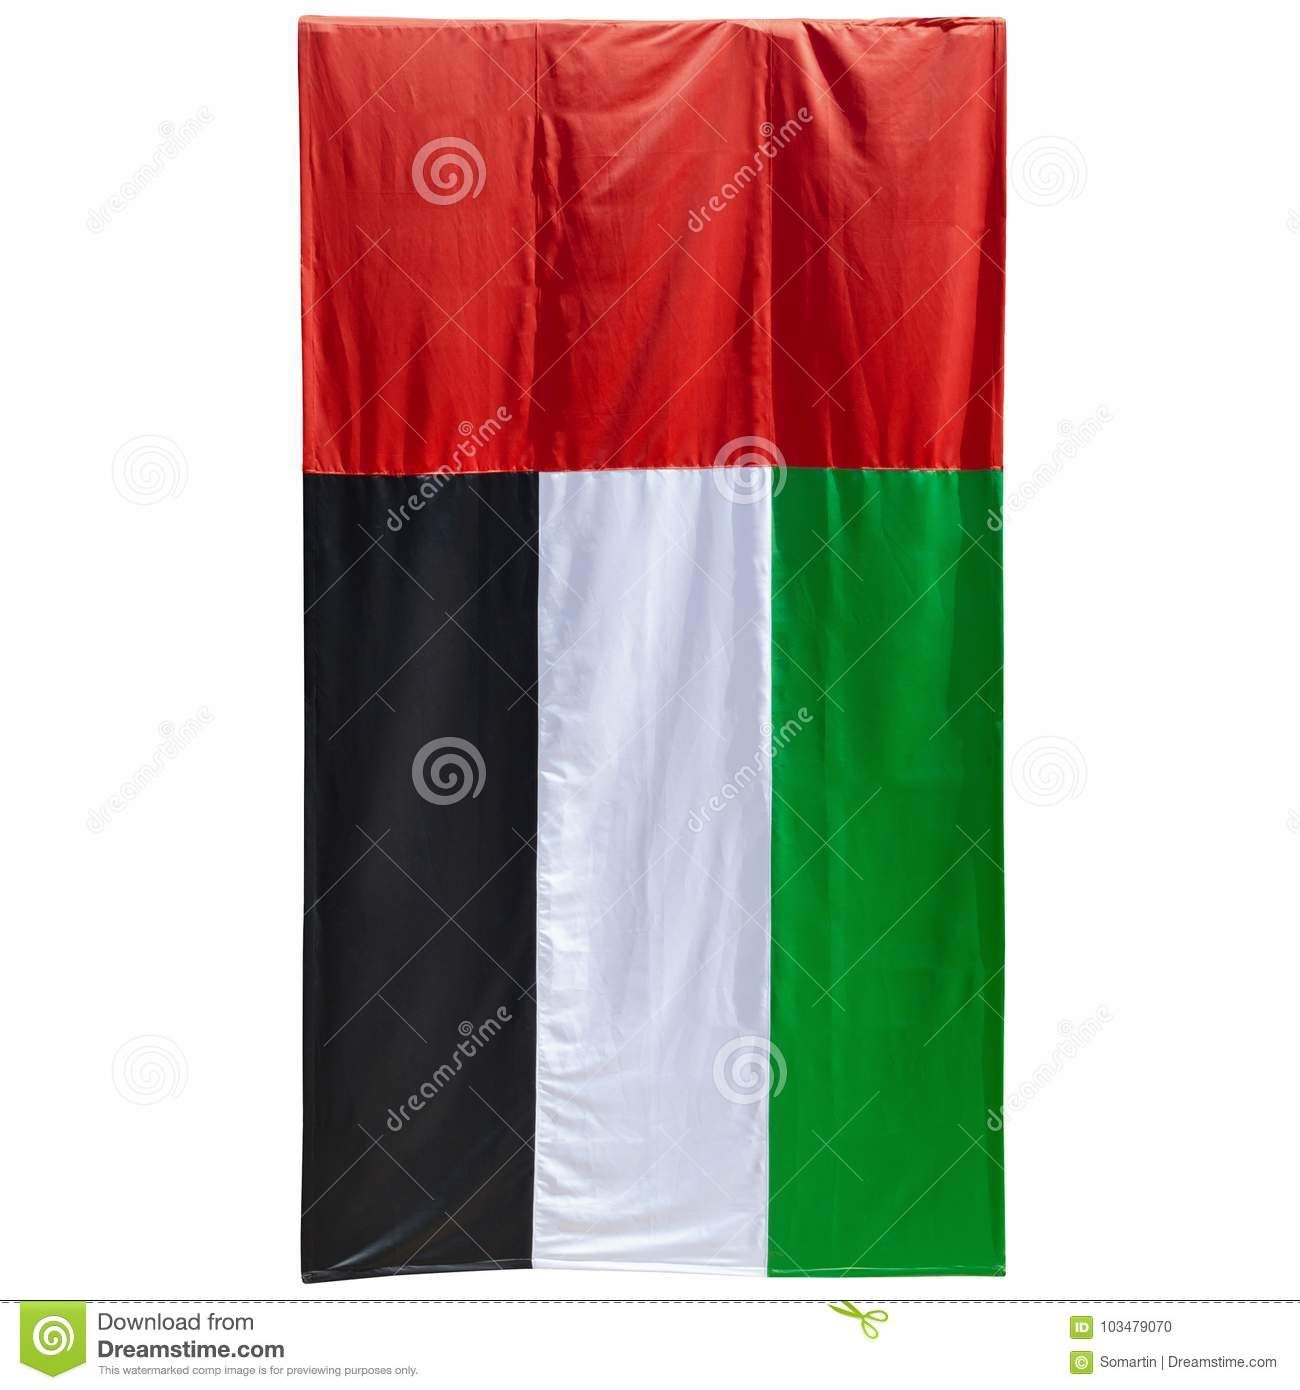 Uae flag stock photos royalty free images dreamstime biocorpaavc Images